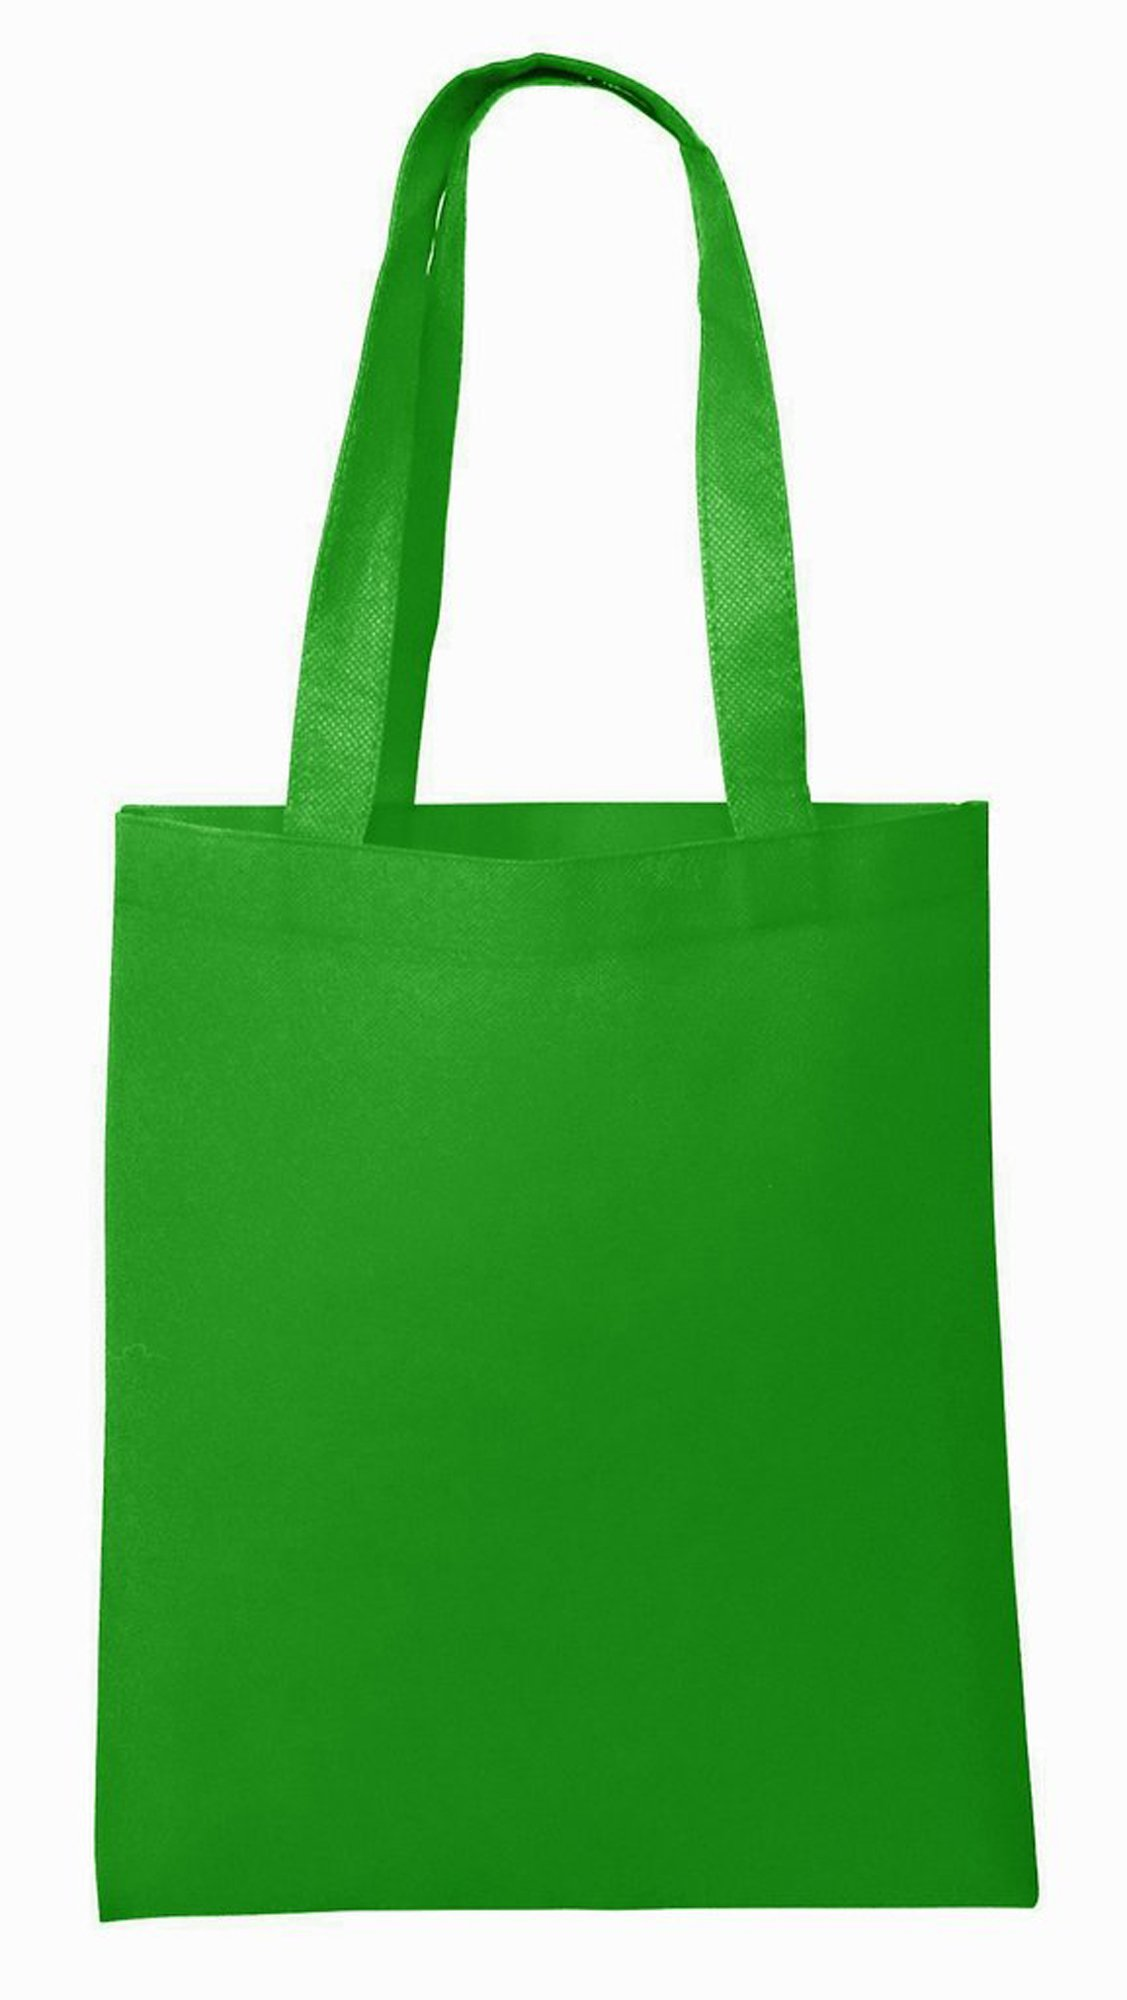 Convention Trade Show Reusable Bags in BULK Stitched Sturdy Non-Woven Material Event Give Away Promo Tote Bags for Events, Conventions, Promotions - NTB10 (100, Kelly Green)